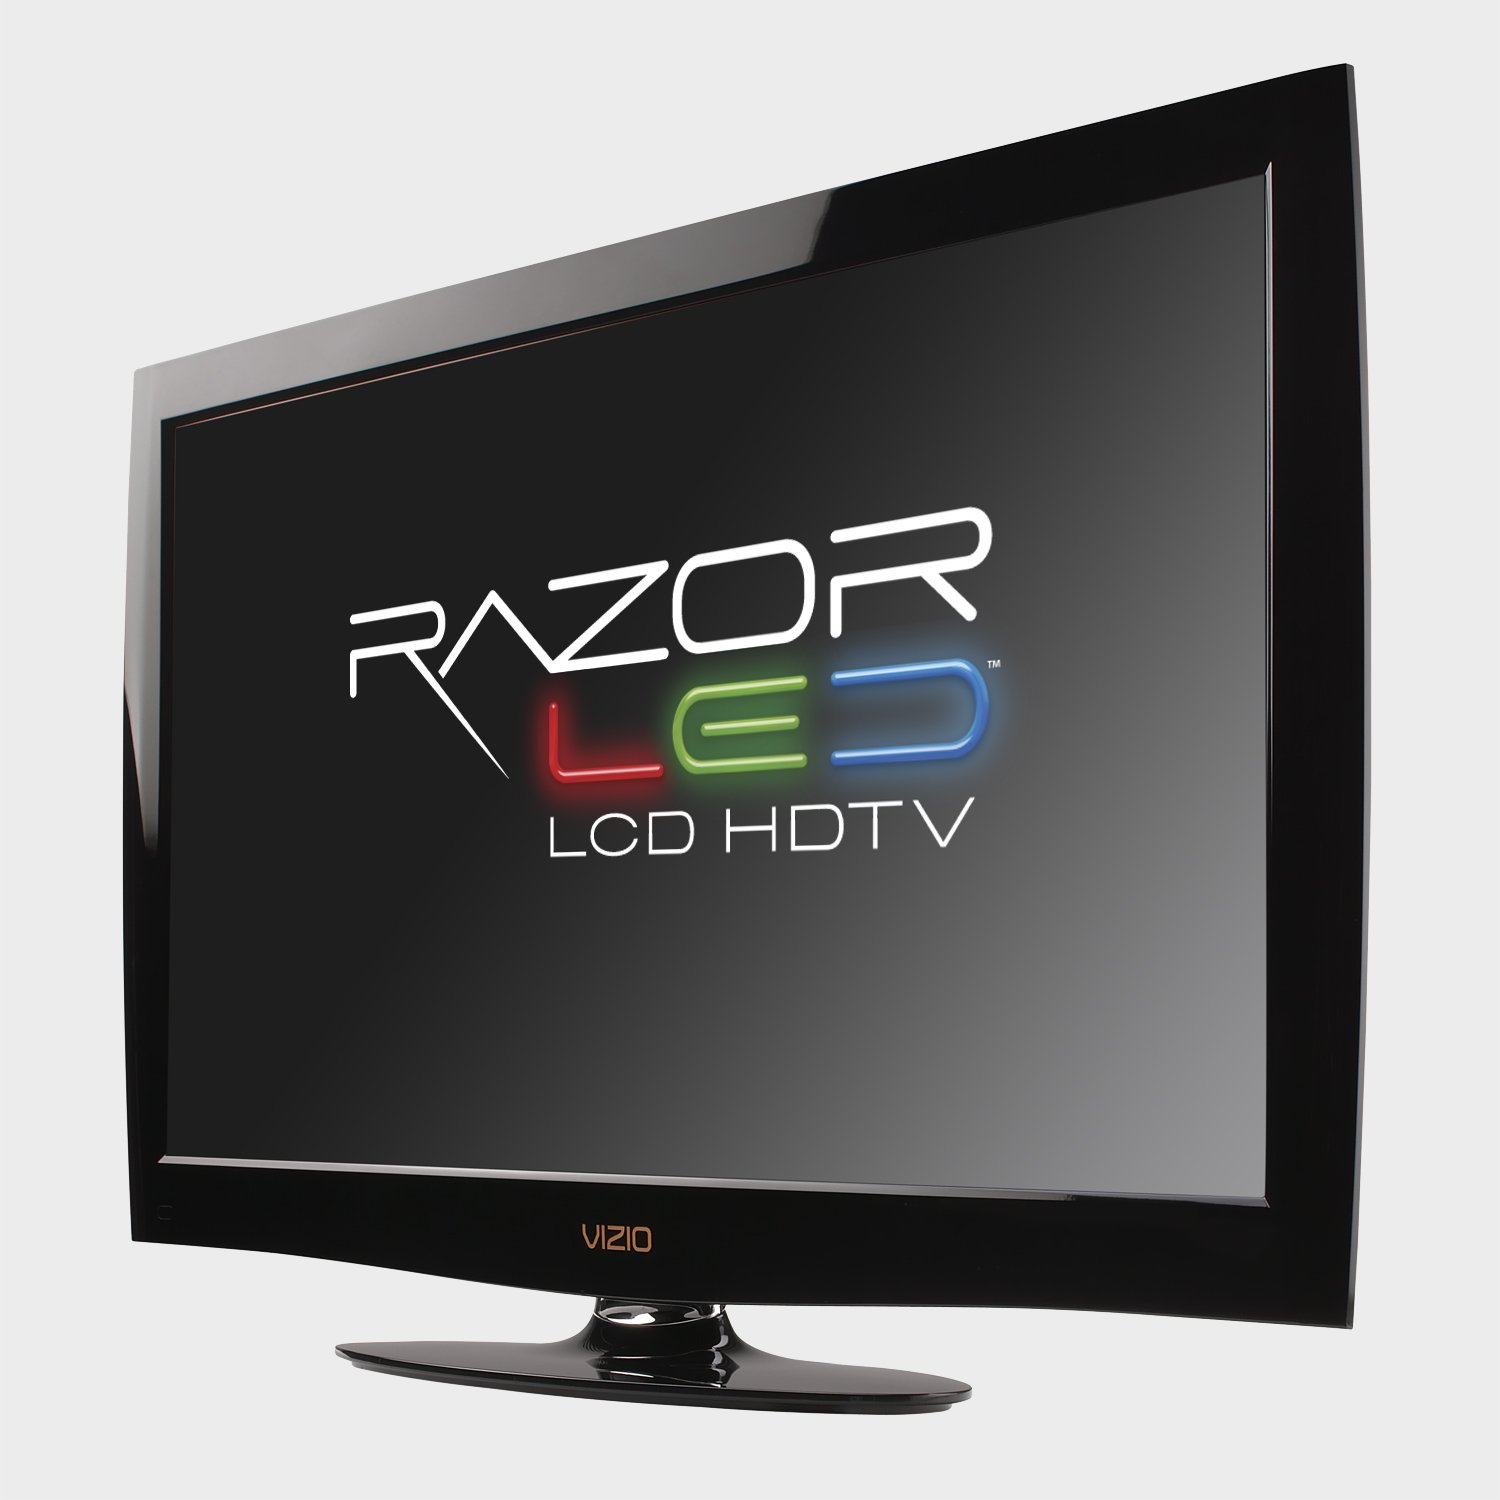 61BnftNKjZL._SL1500_ amazon com vizio m420nv 42 inch class edge lit razor led lcd hdtv 42 Inch Vizio Wall Mount at fashall.co